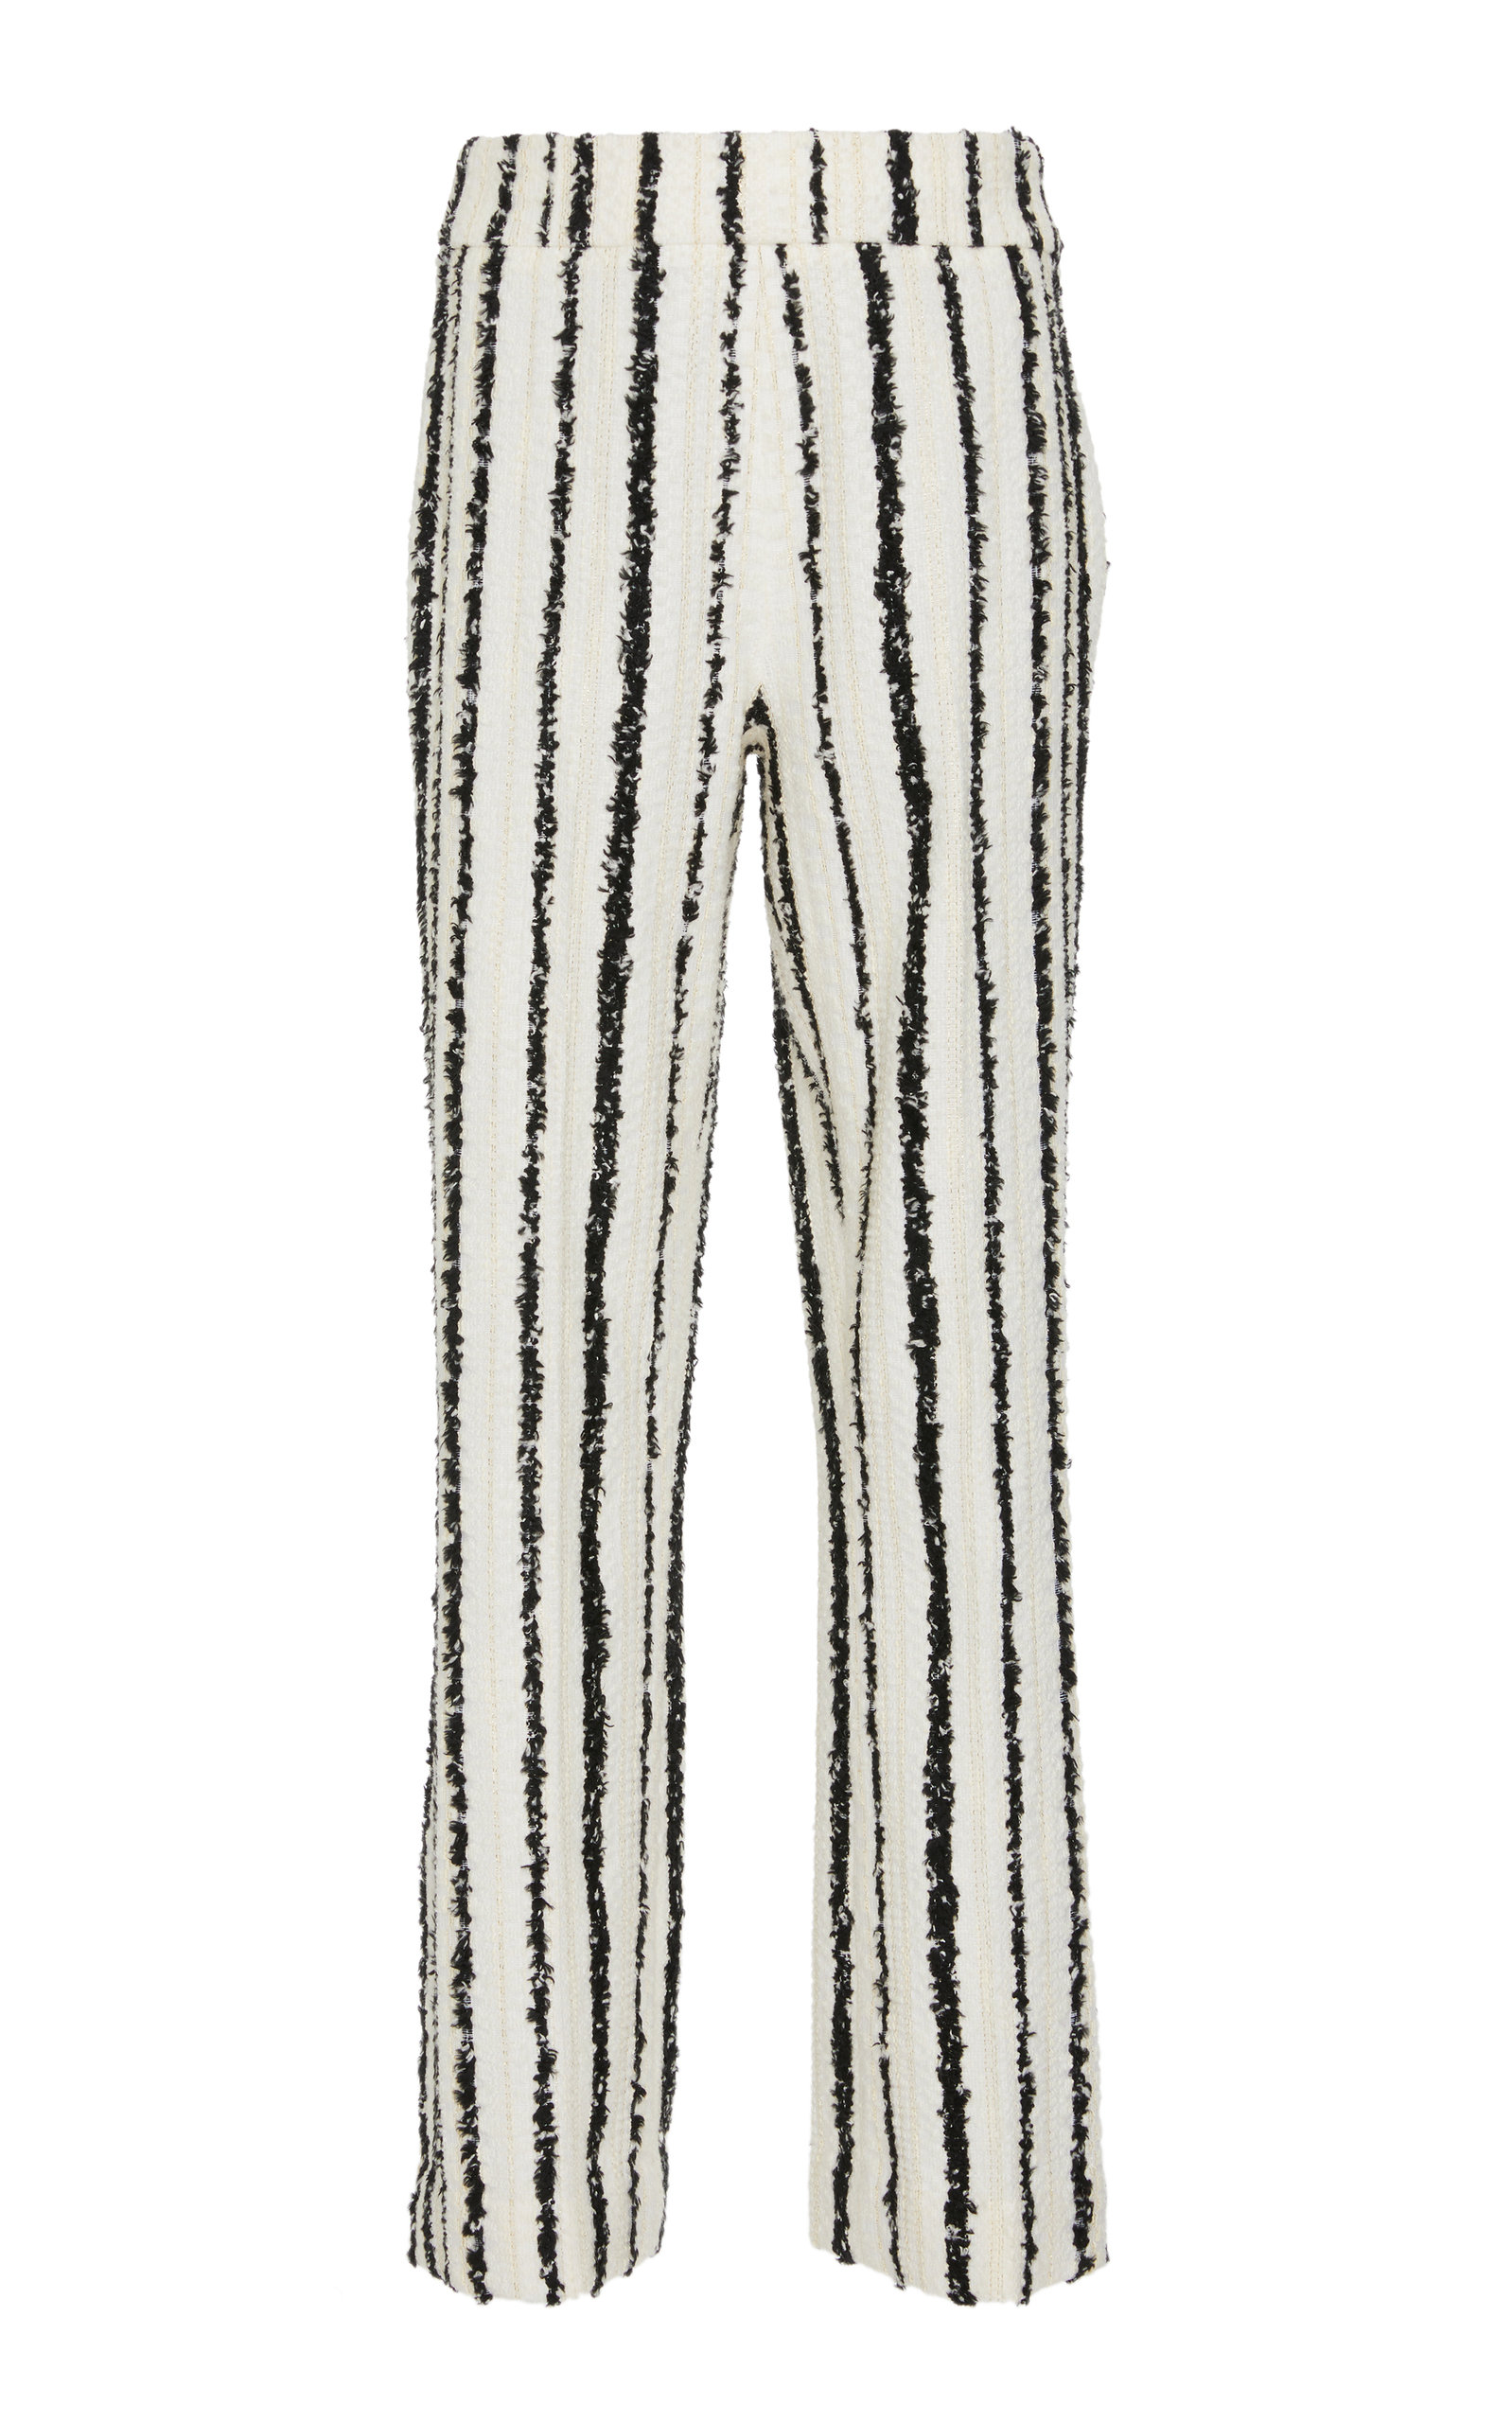 BOUGUESSA Striped Tweed Pants in Black/White